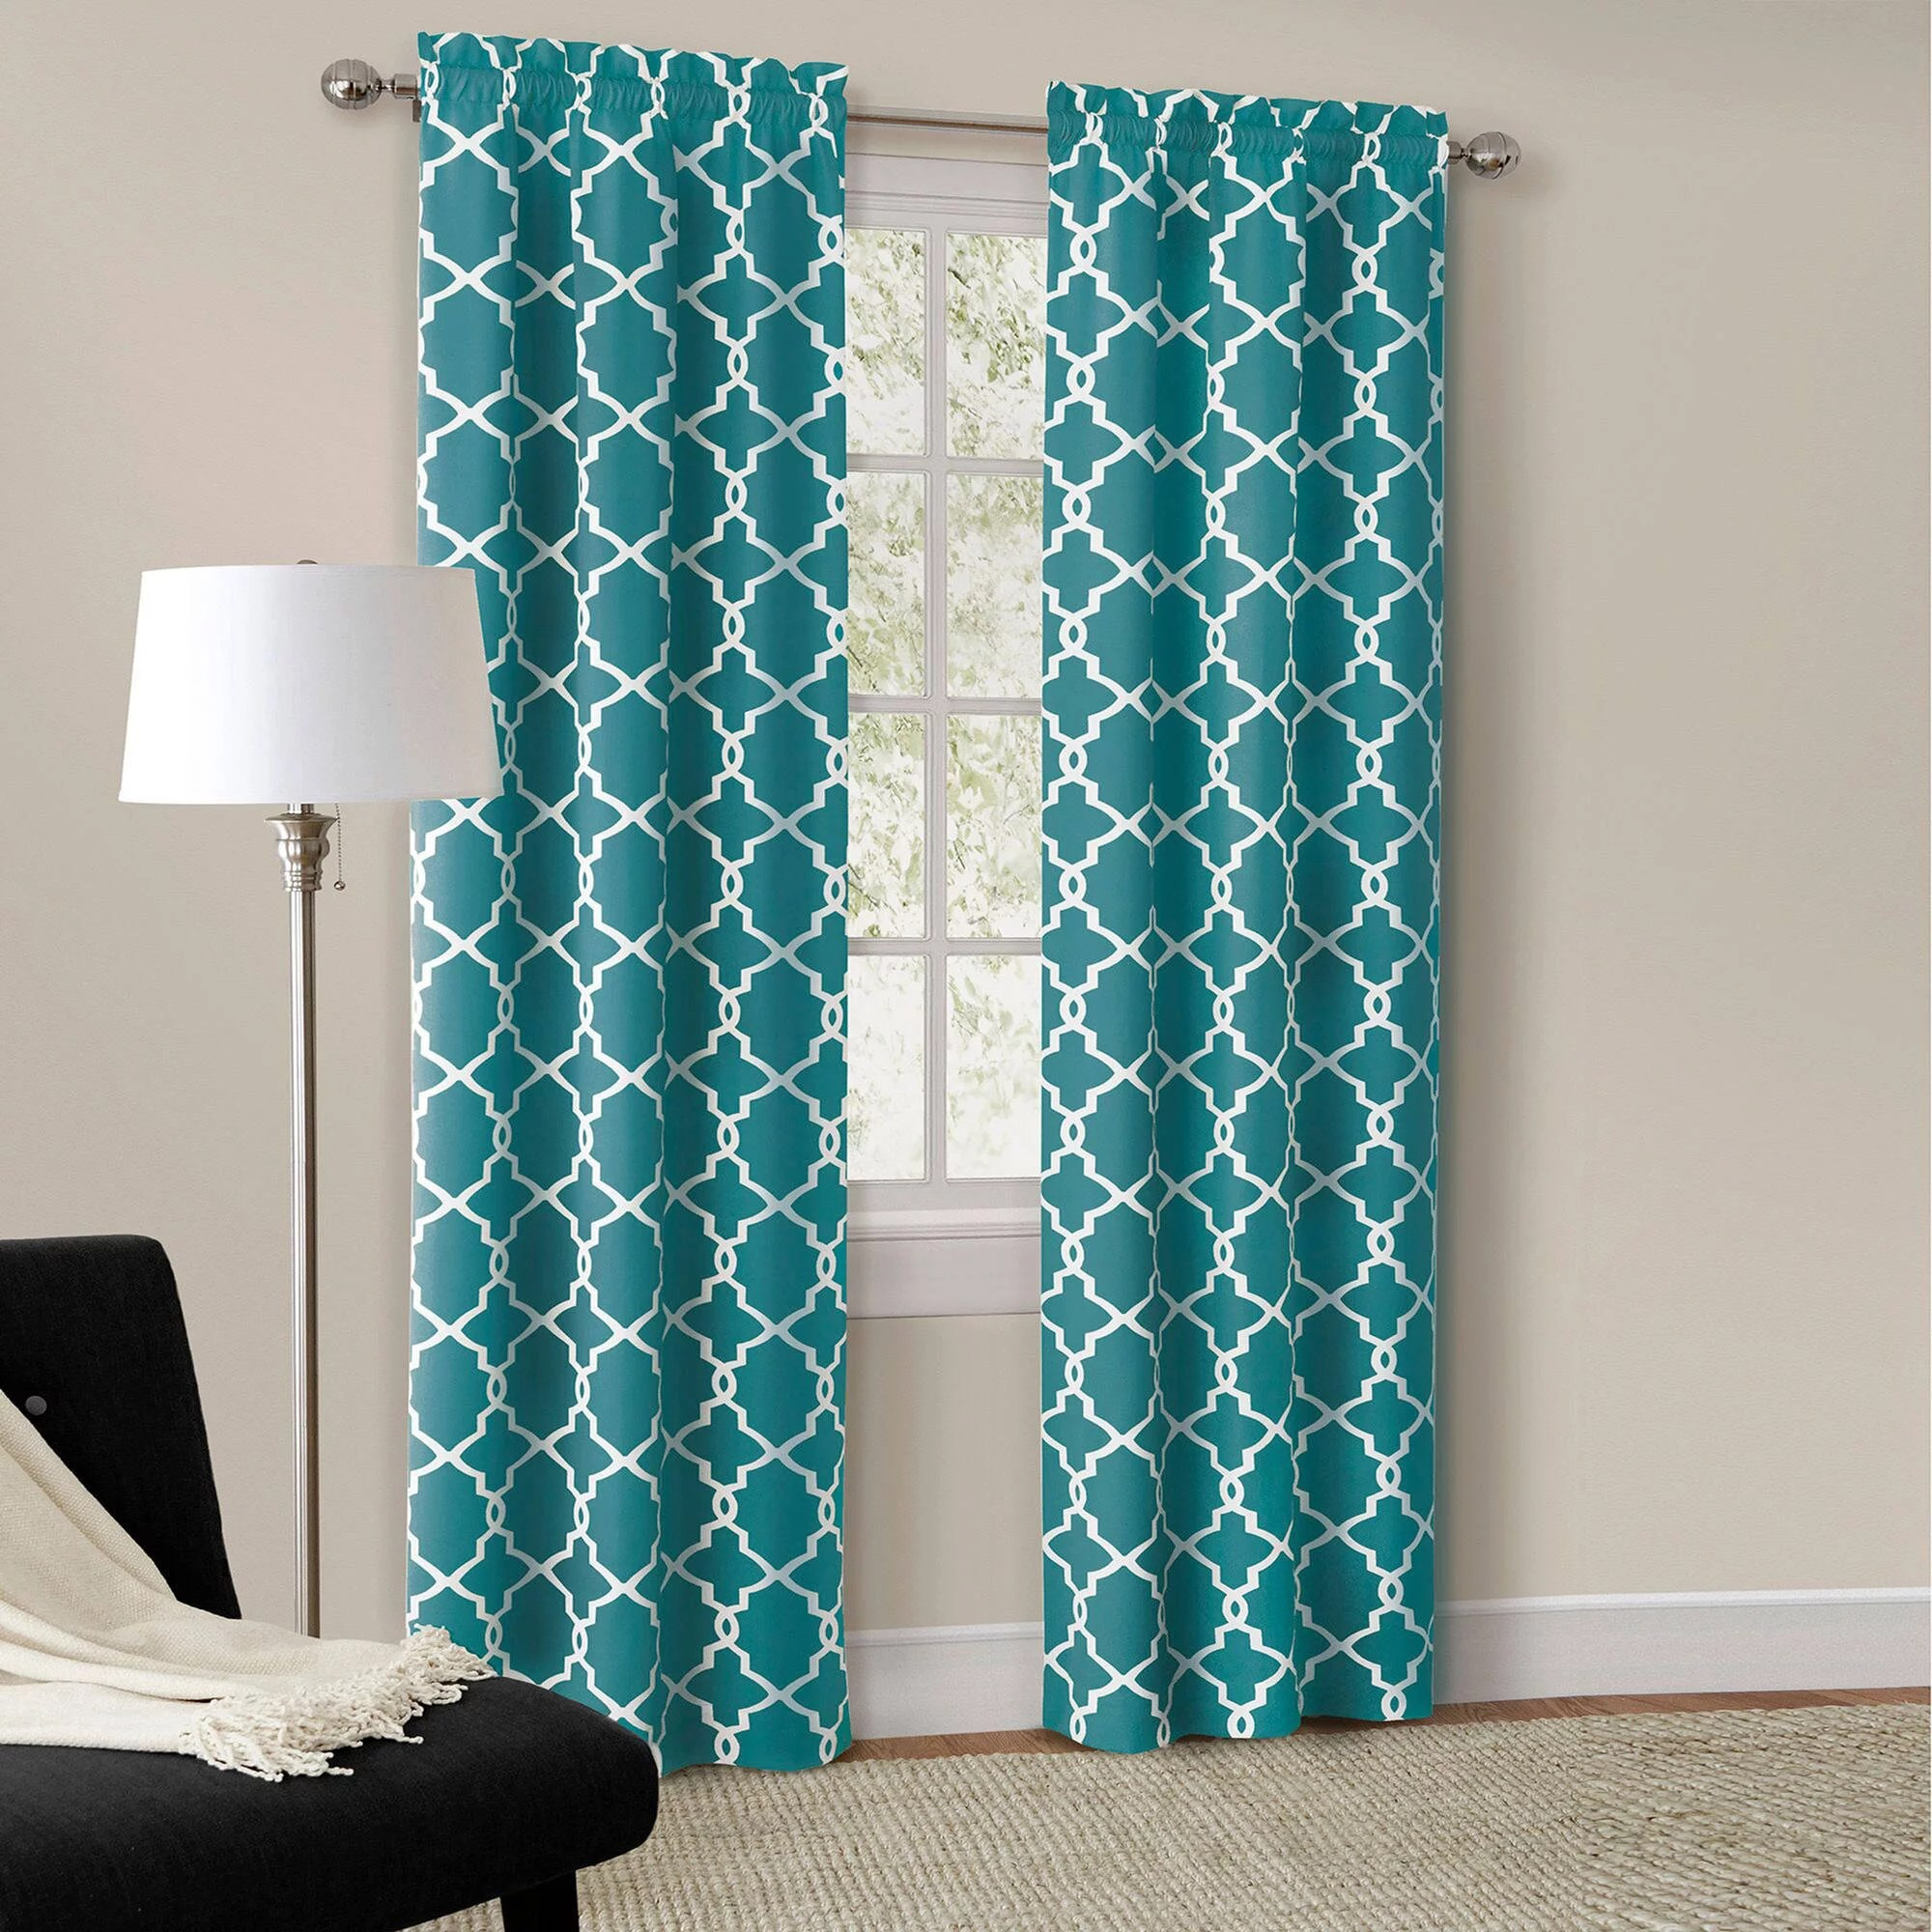 Curtains For Sale At Walmart Mainstays Calix Fashion Window Curtain Panel Set Of 2